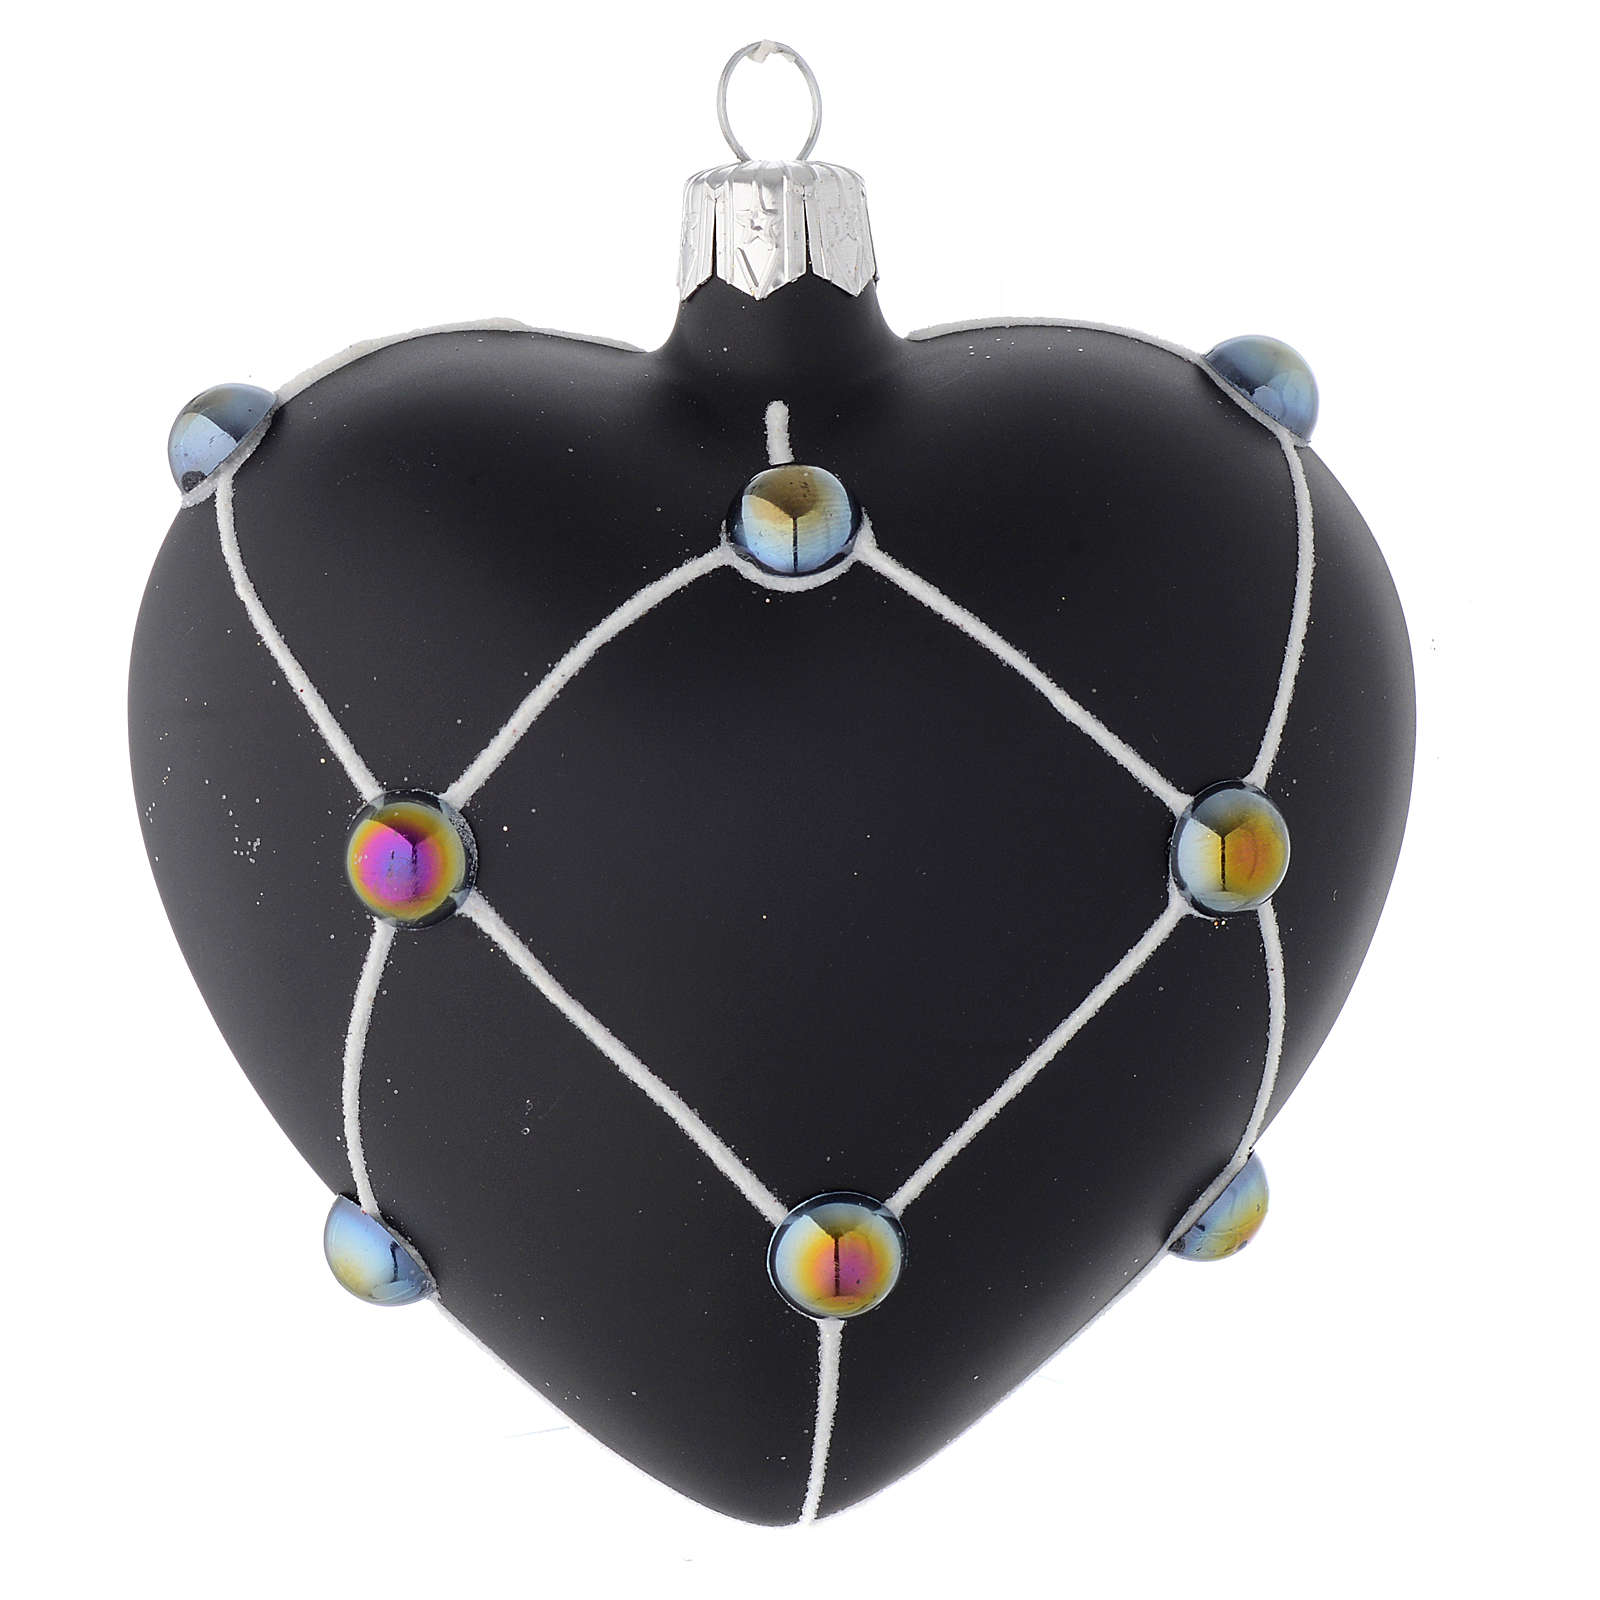 Heart Shaped Bauble in satin black blown glass with stones 100mm 4